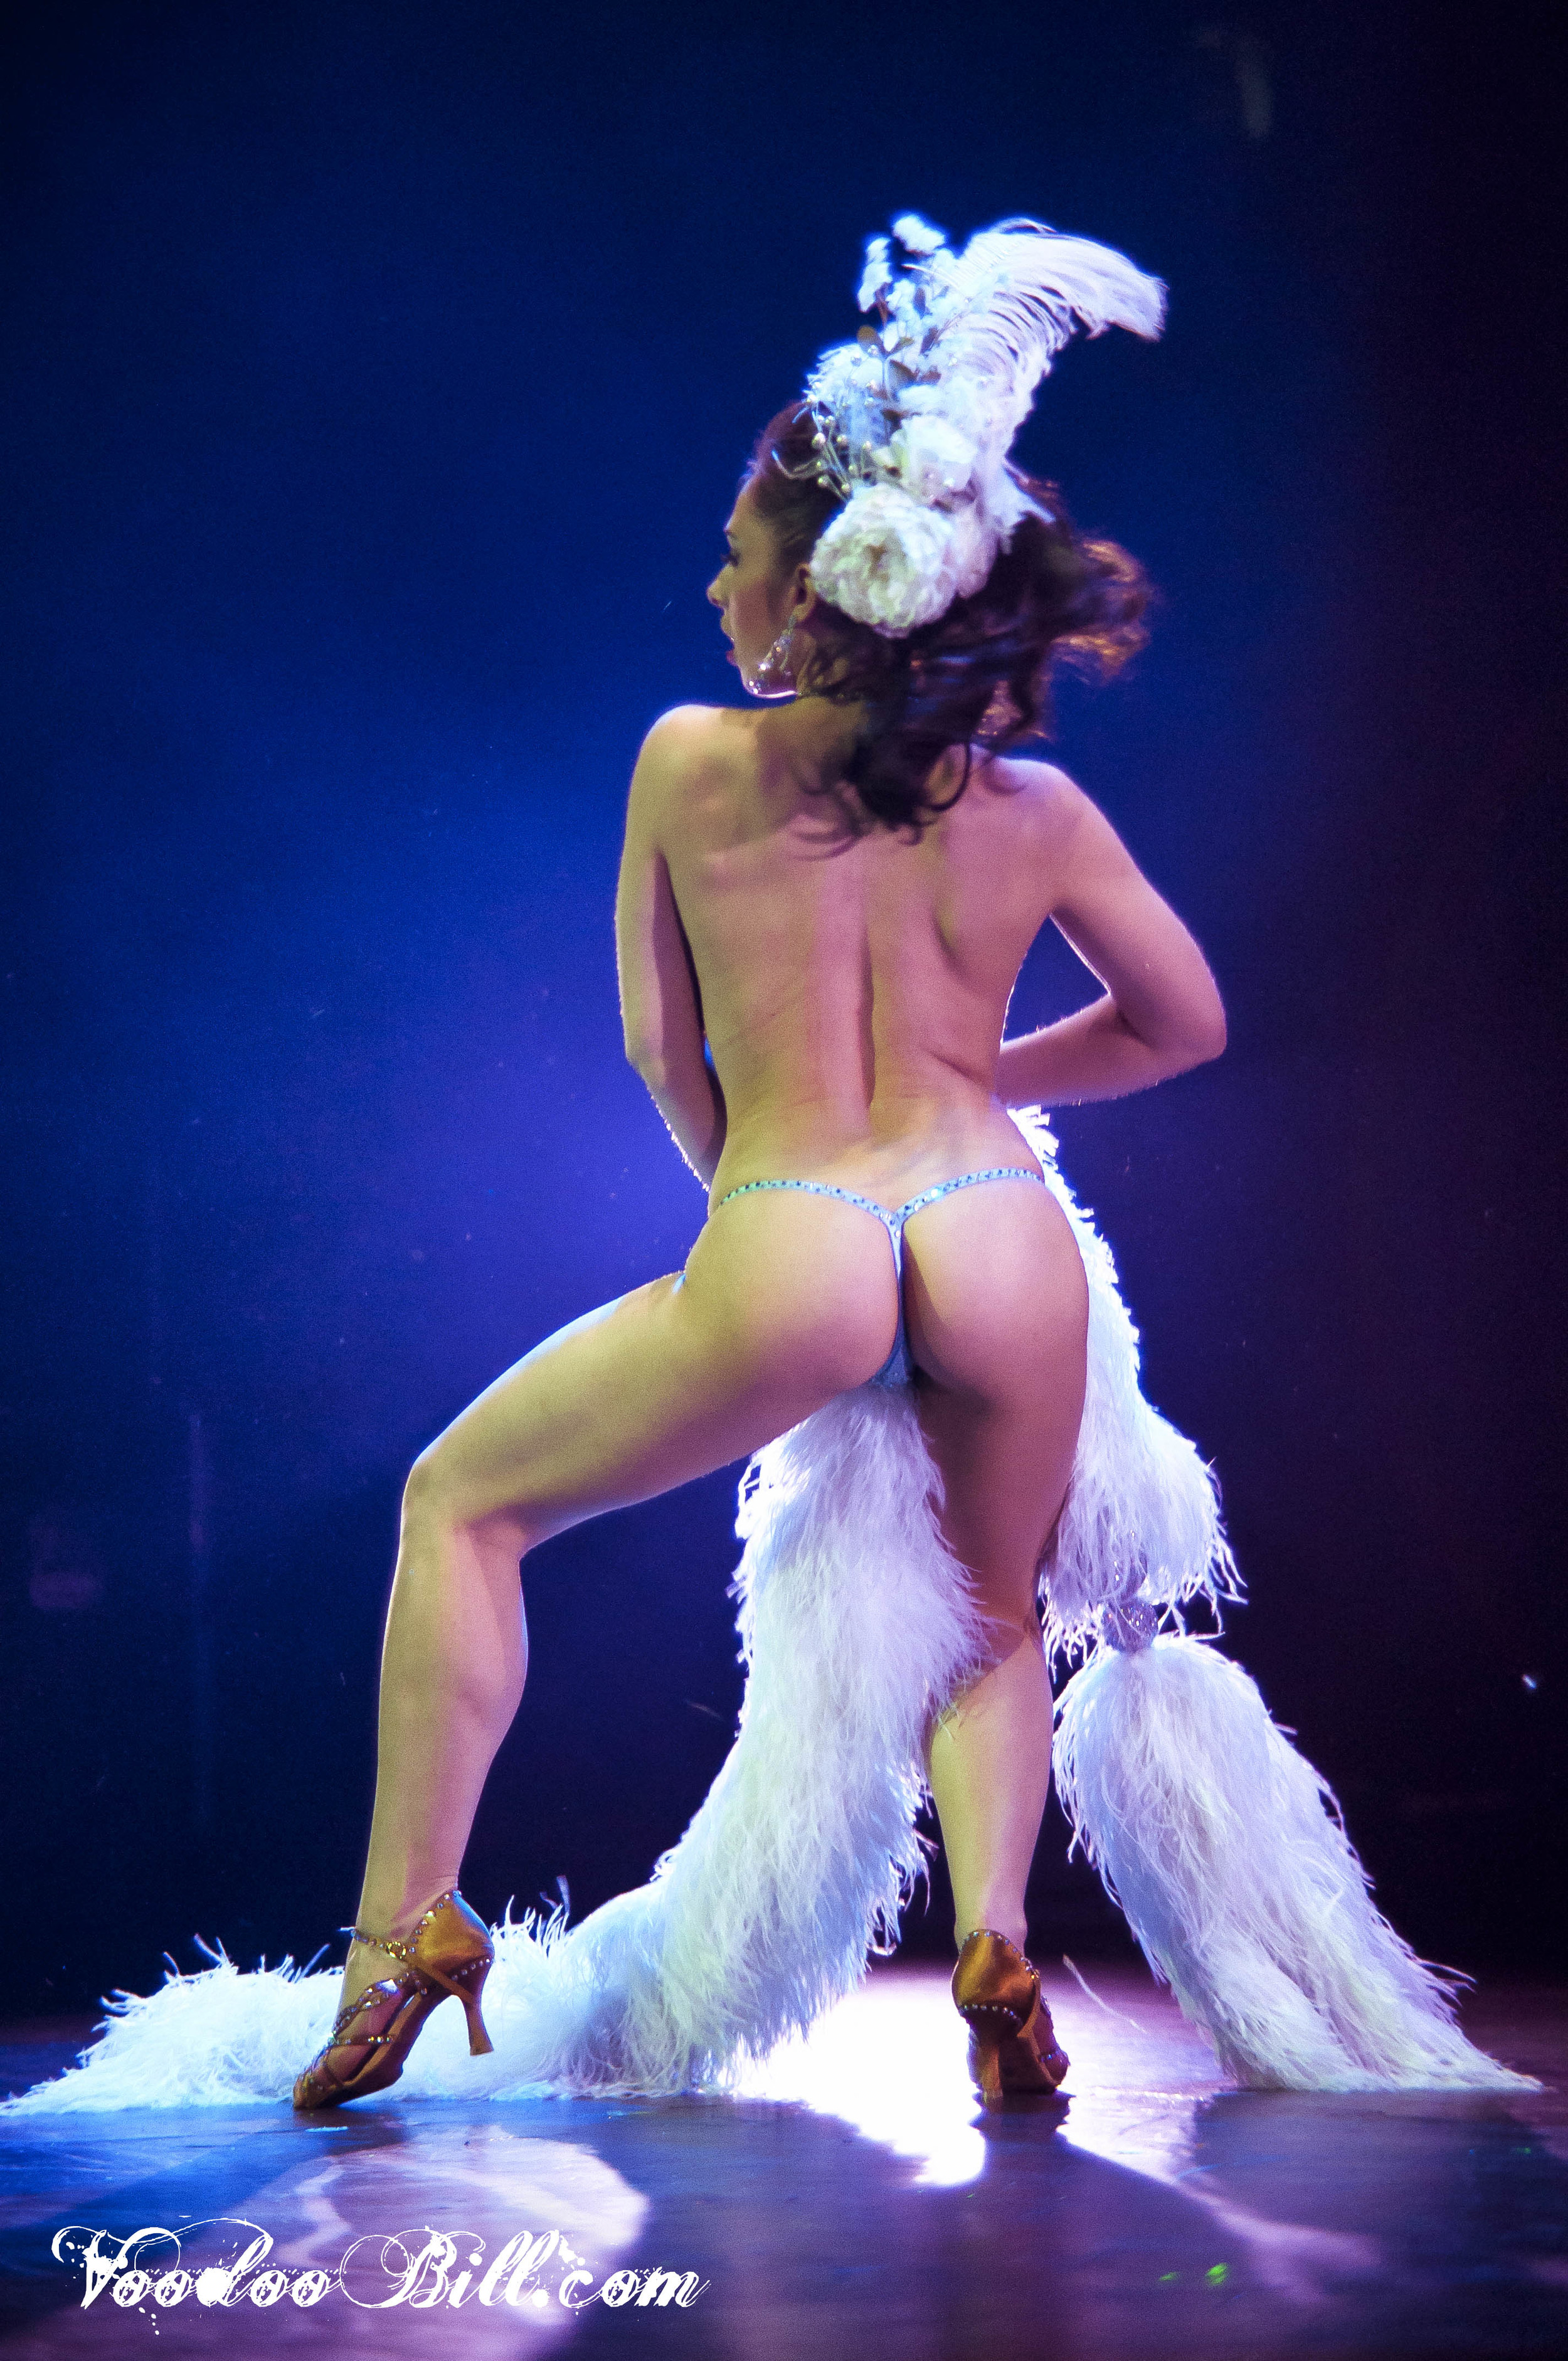 Vancouver International Burlesque Festival photo by Voodoo Bill